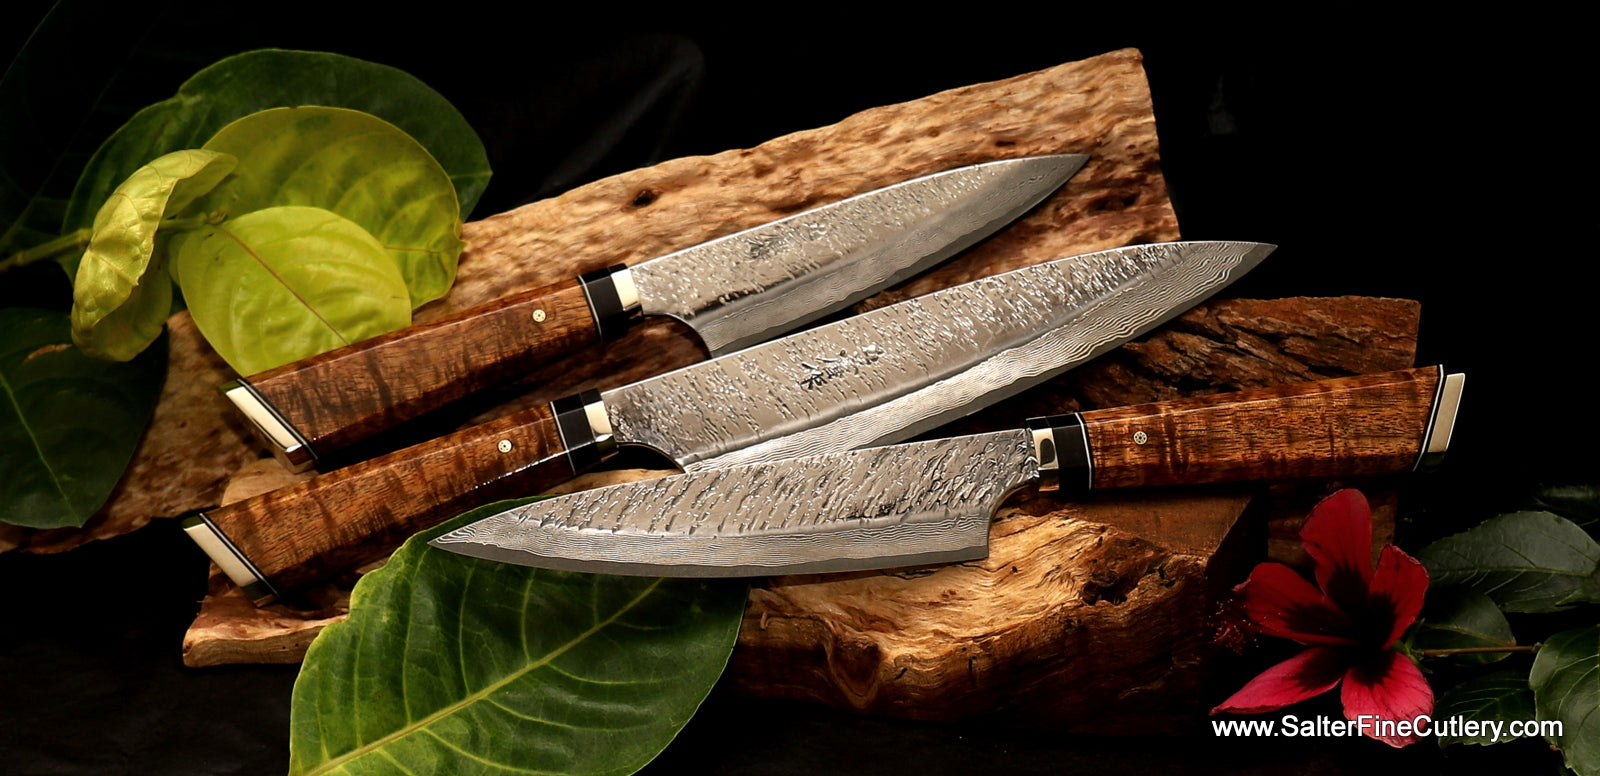 3-pc custom handmade stainless chef knife set from Salter Fine Cutlery of Hawaii